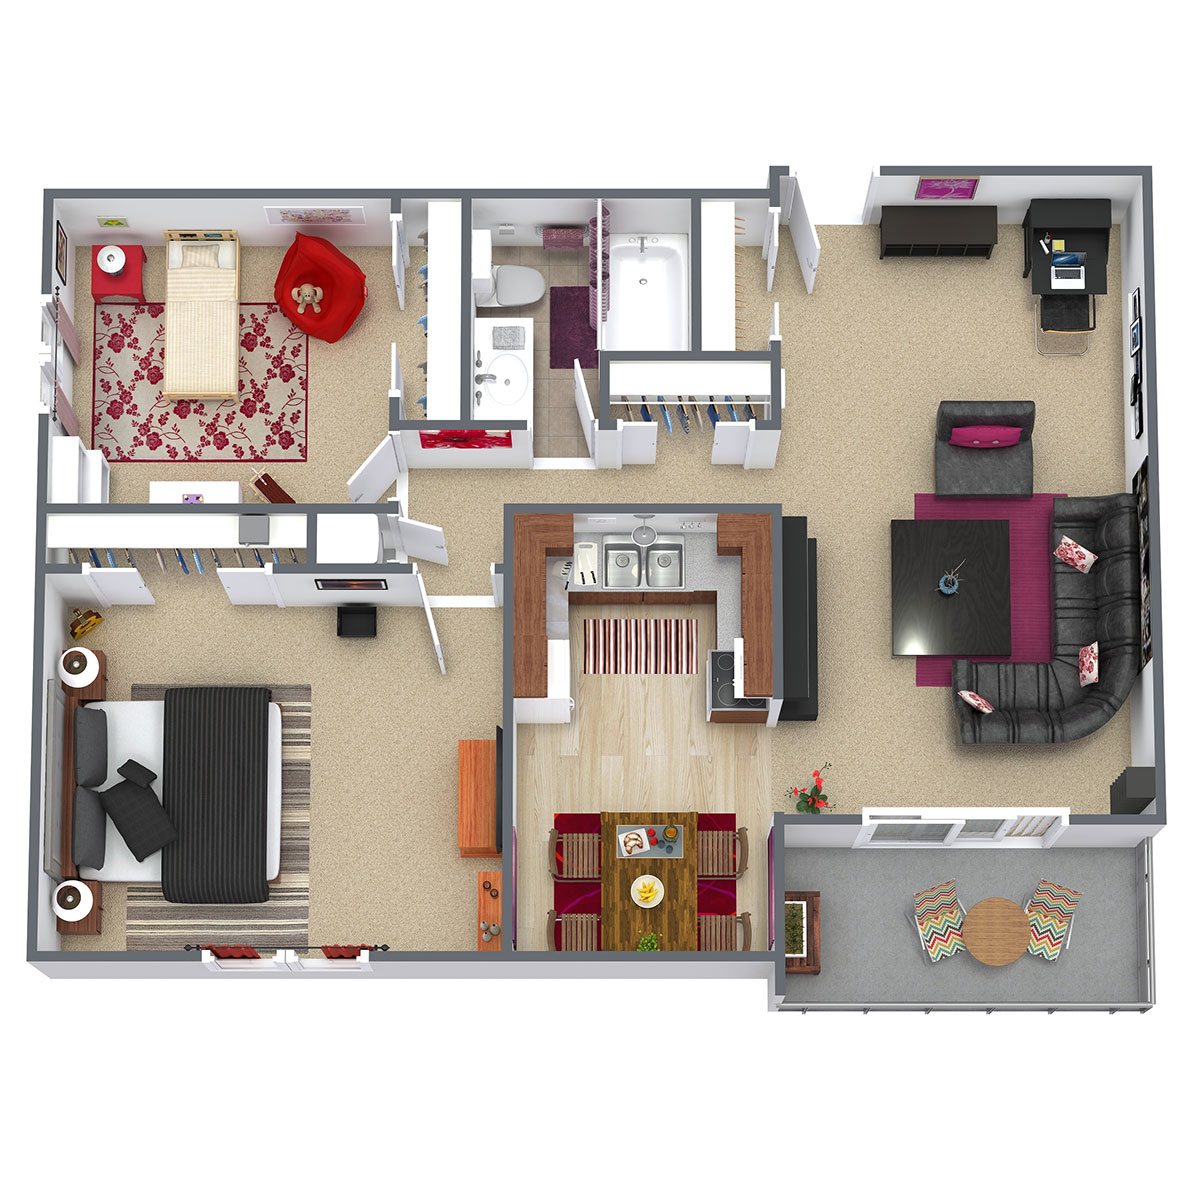 Pinehill Park - Floorplan - 2 Bedroom / 1 Bath